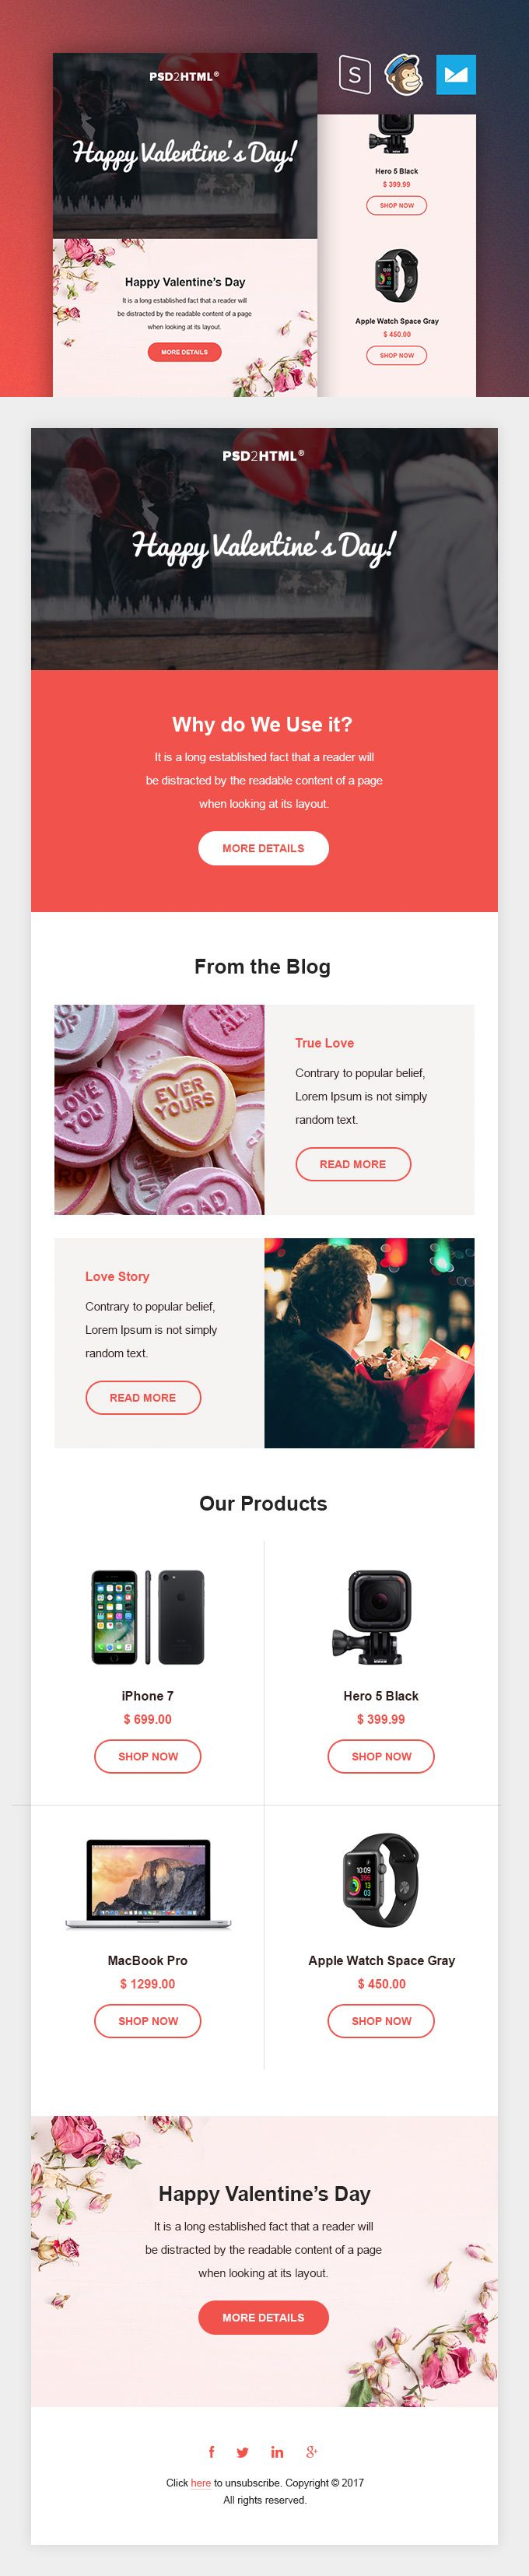 Valentines Day Email Template Free Download Coding Pinterest